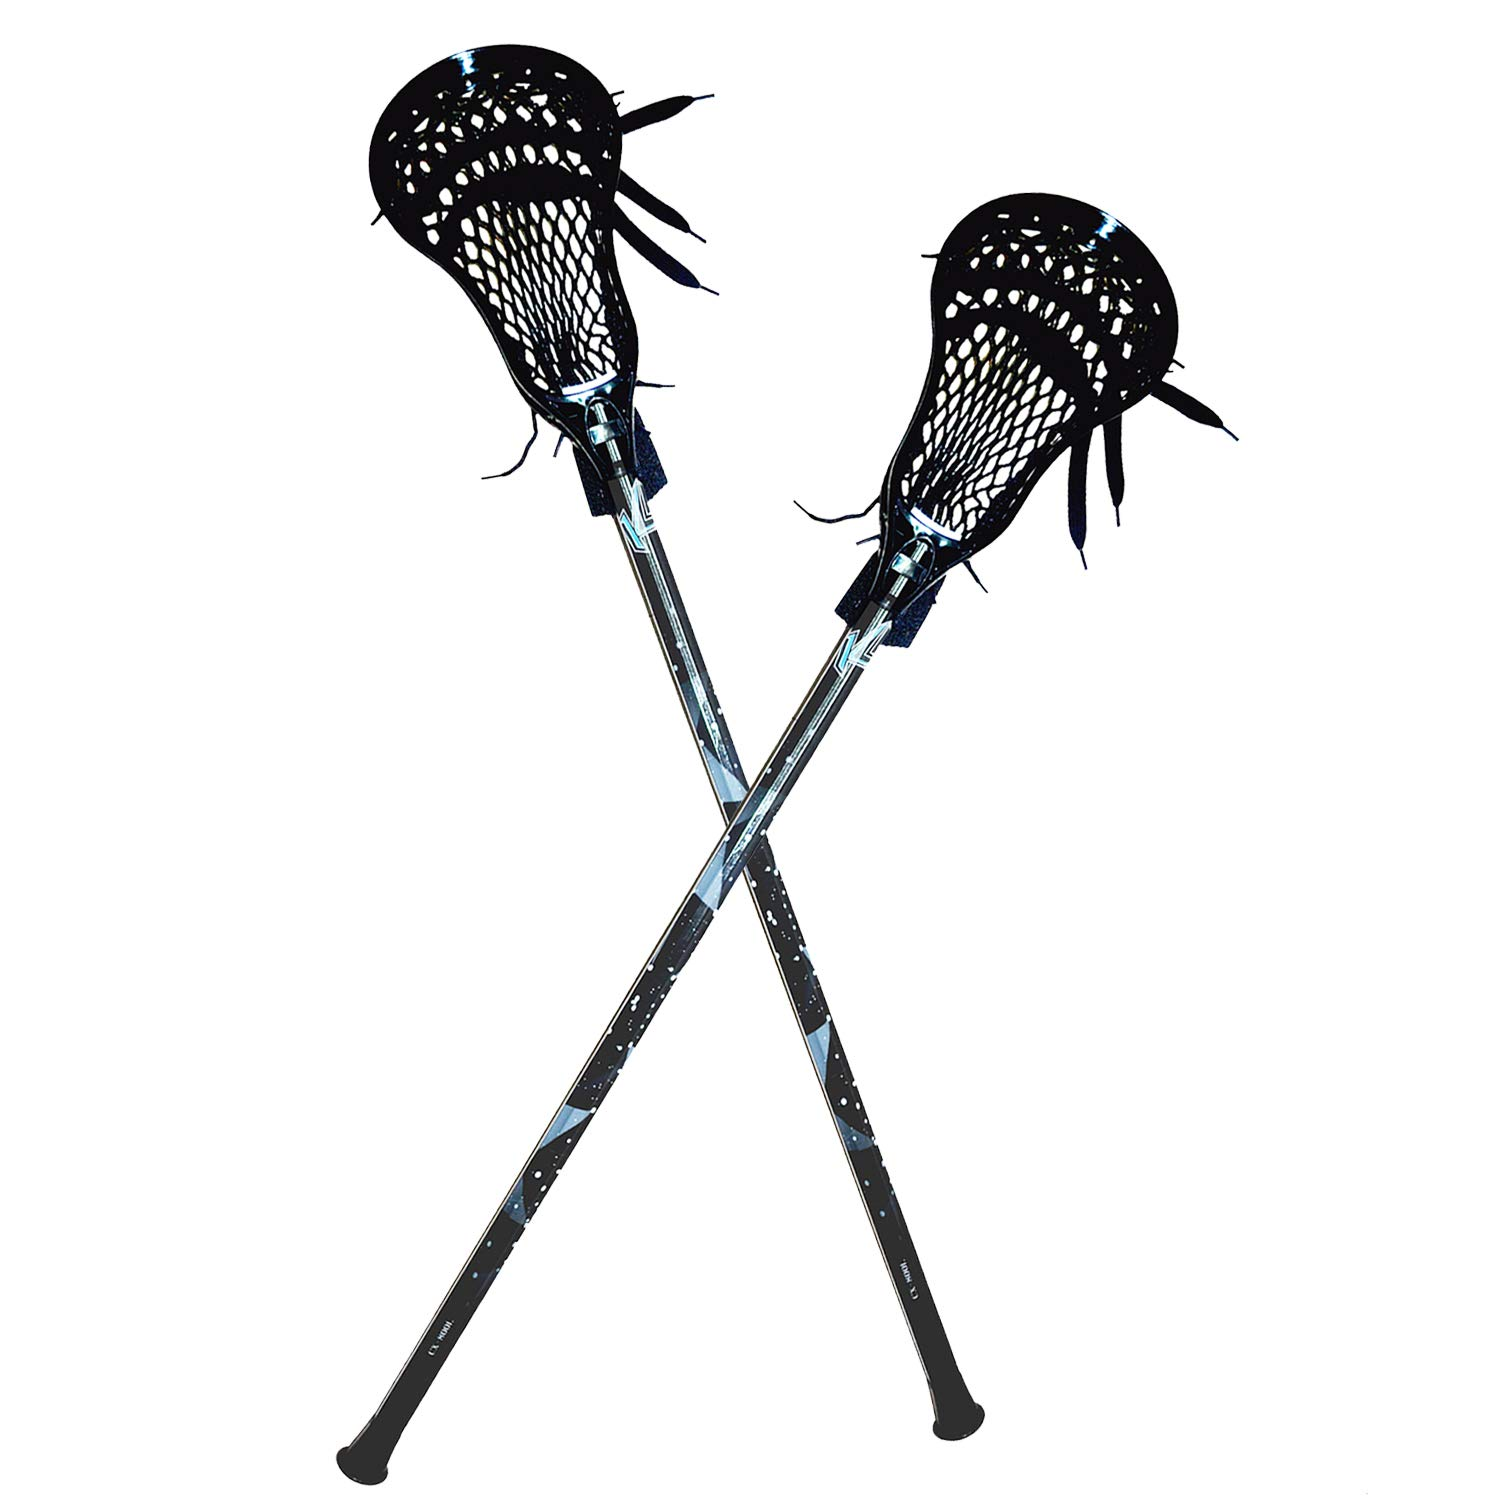 CAKLOR Lacrosse Complete Attack/Midfield Stick with Shaft & Head